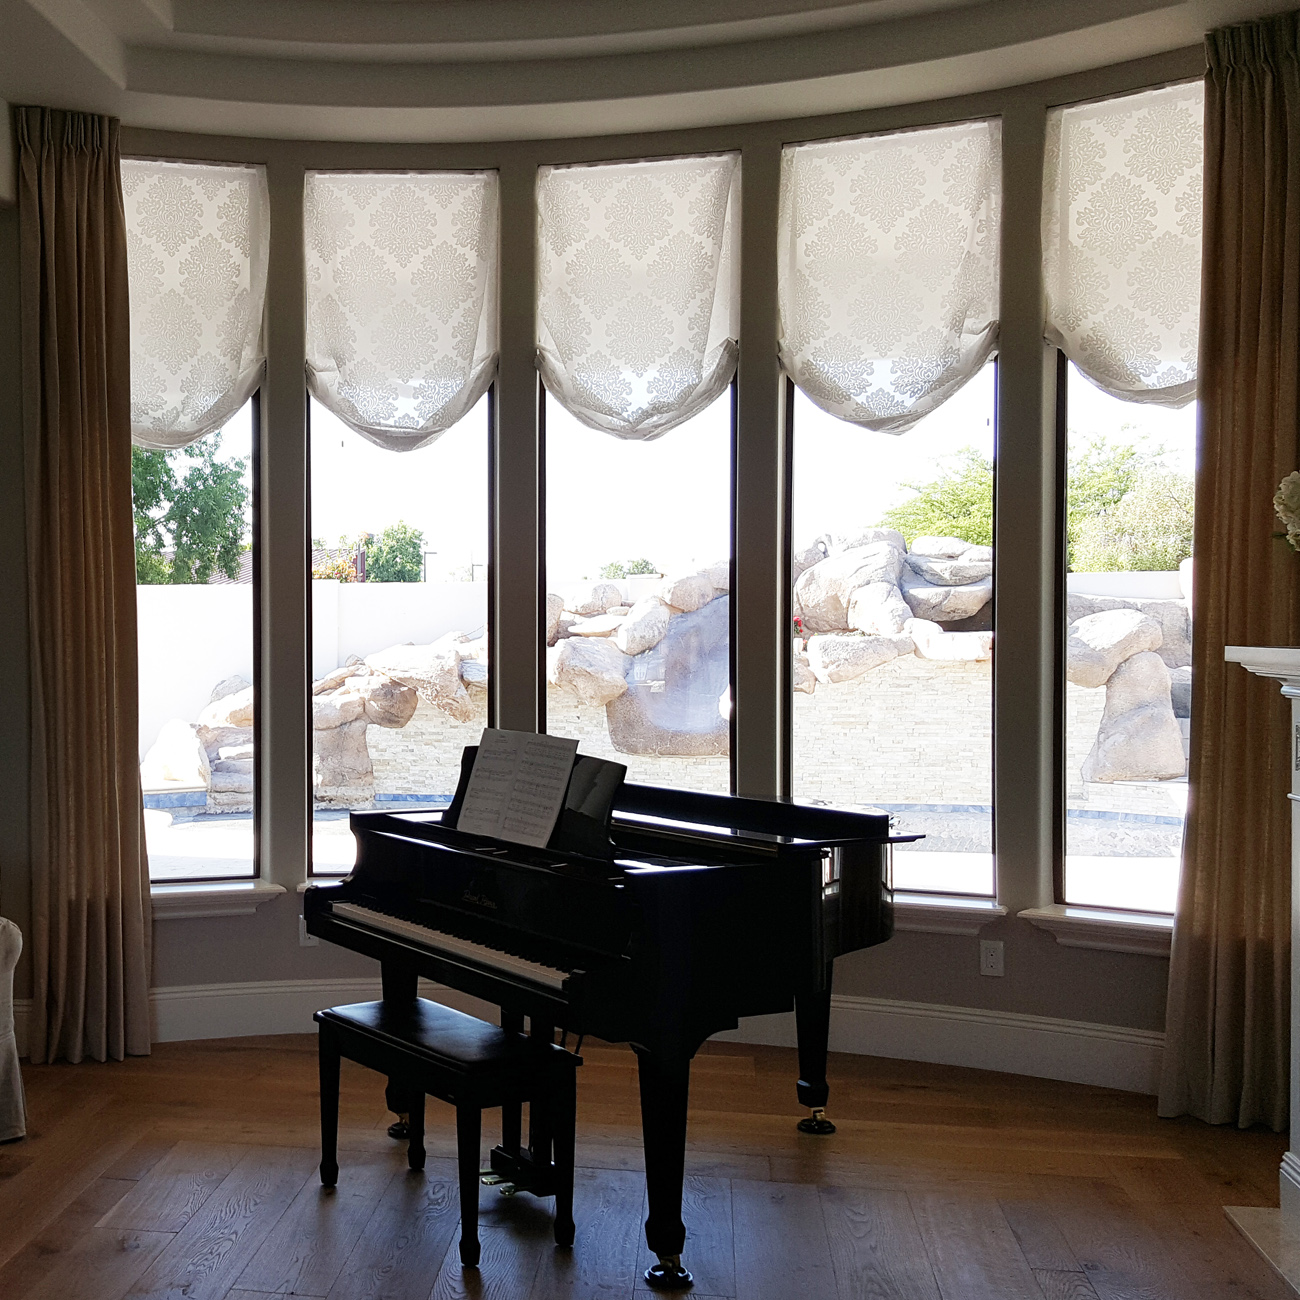 circular sidepanels with curtains